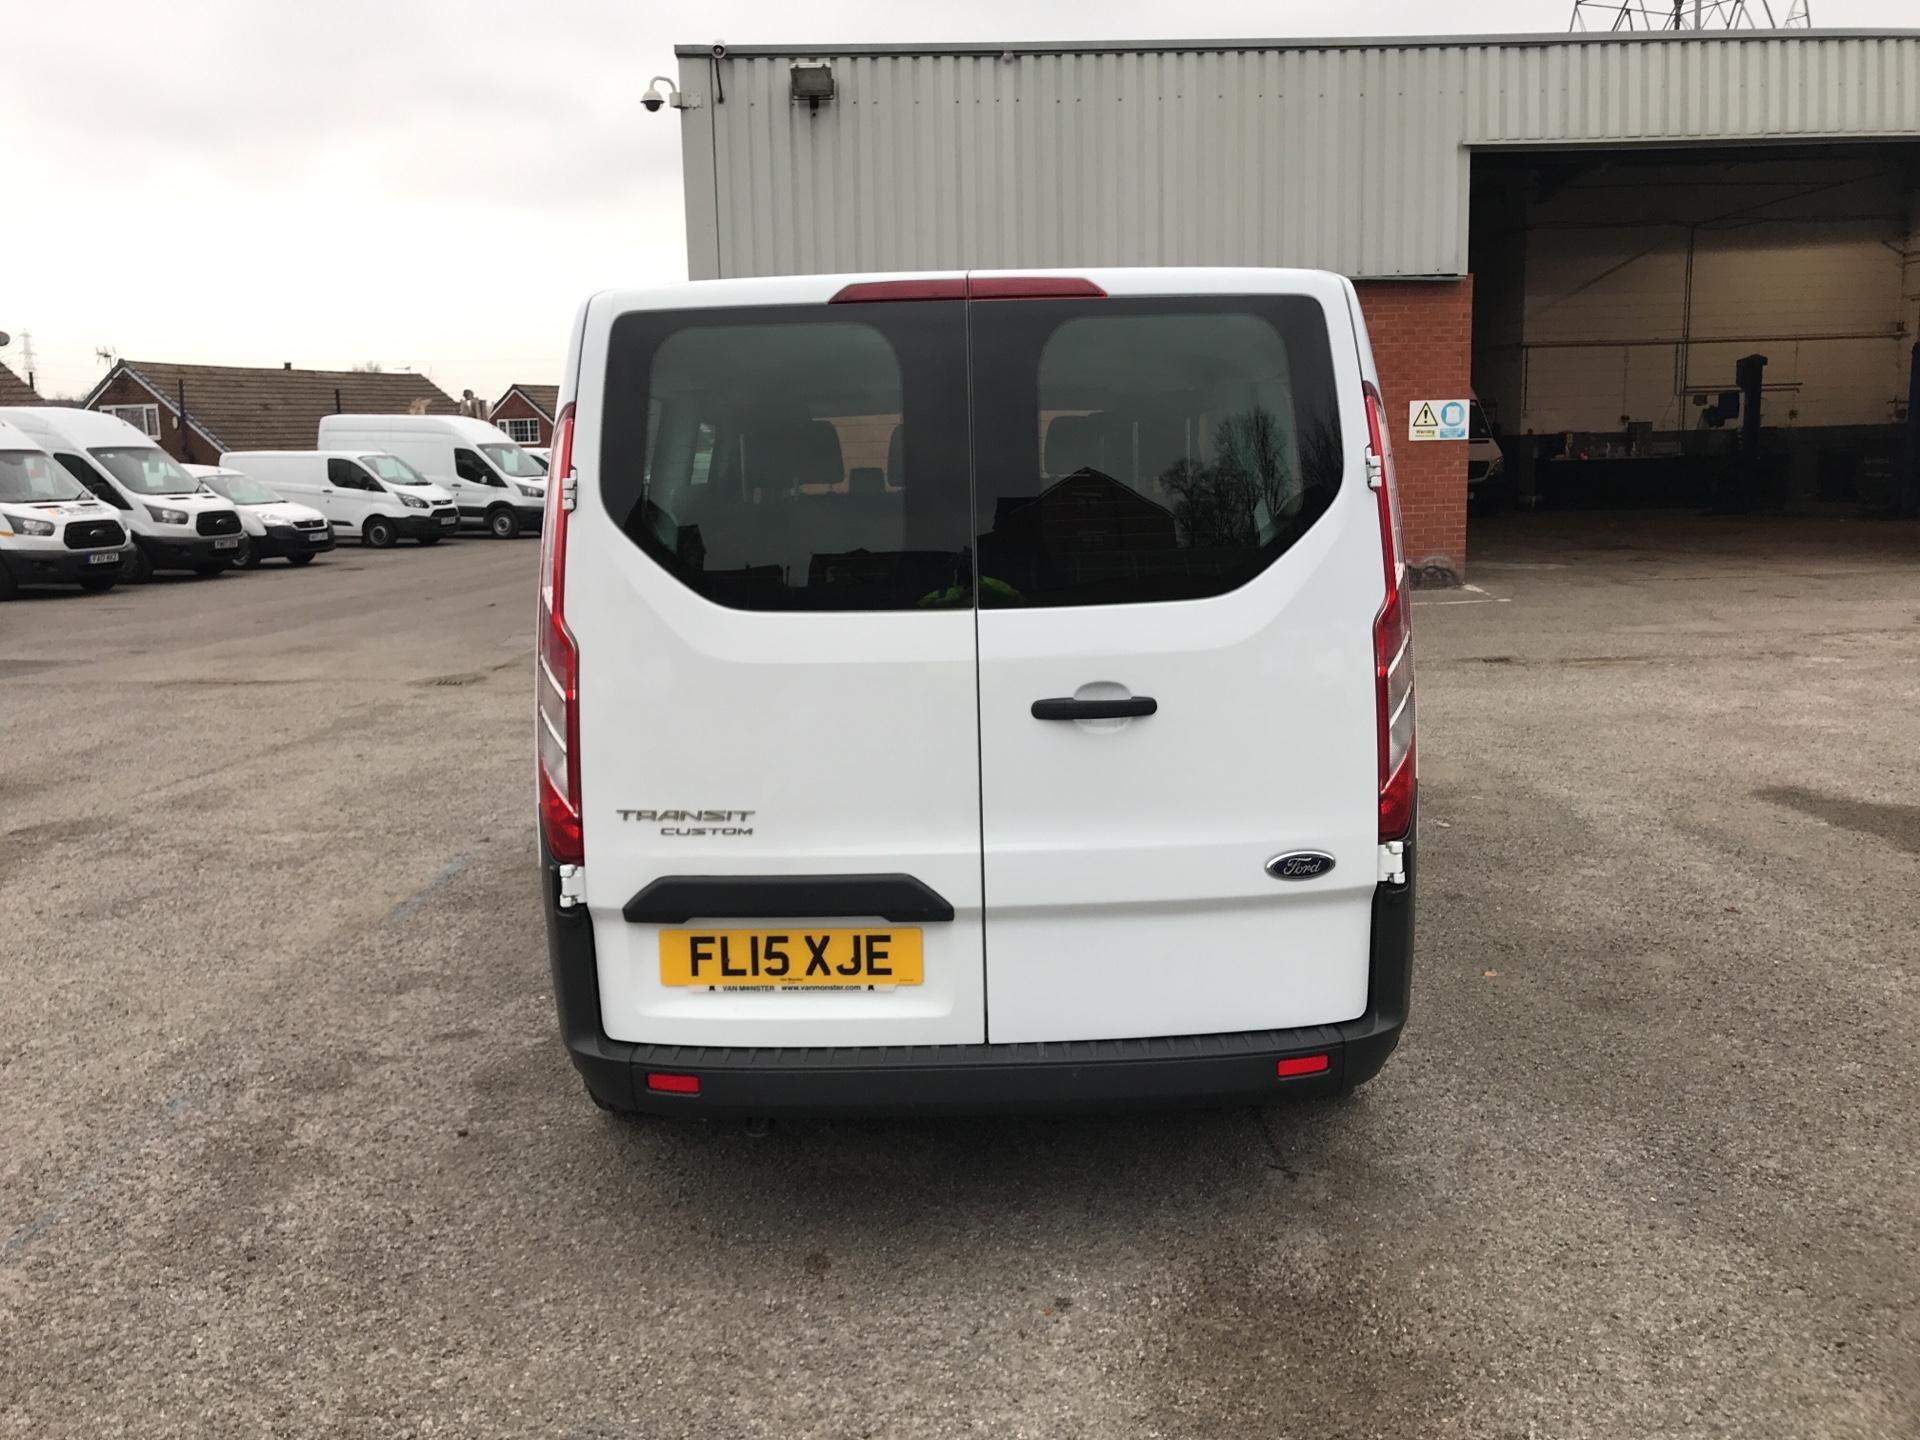 2015 Ford Transit Custom 2.2 Tdci 125Ps Low Roof Kombi Van euro 5 - VALUE RANGE - CONDITION REFLECTED IN PRICE  (FL15XJE) Image 4